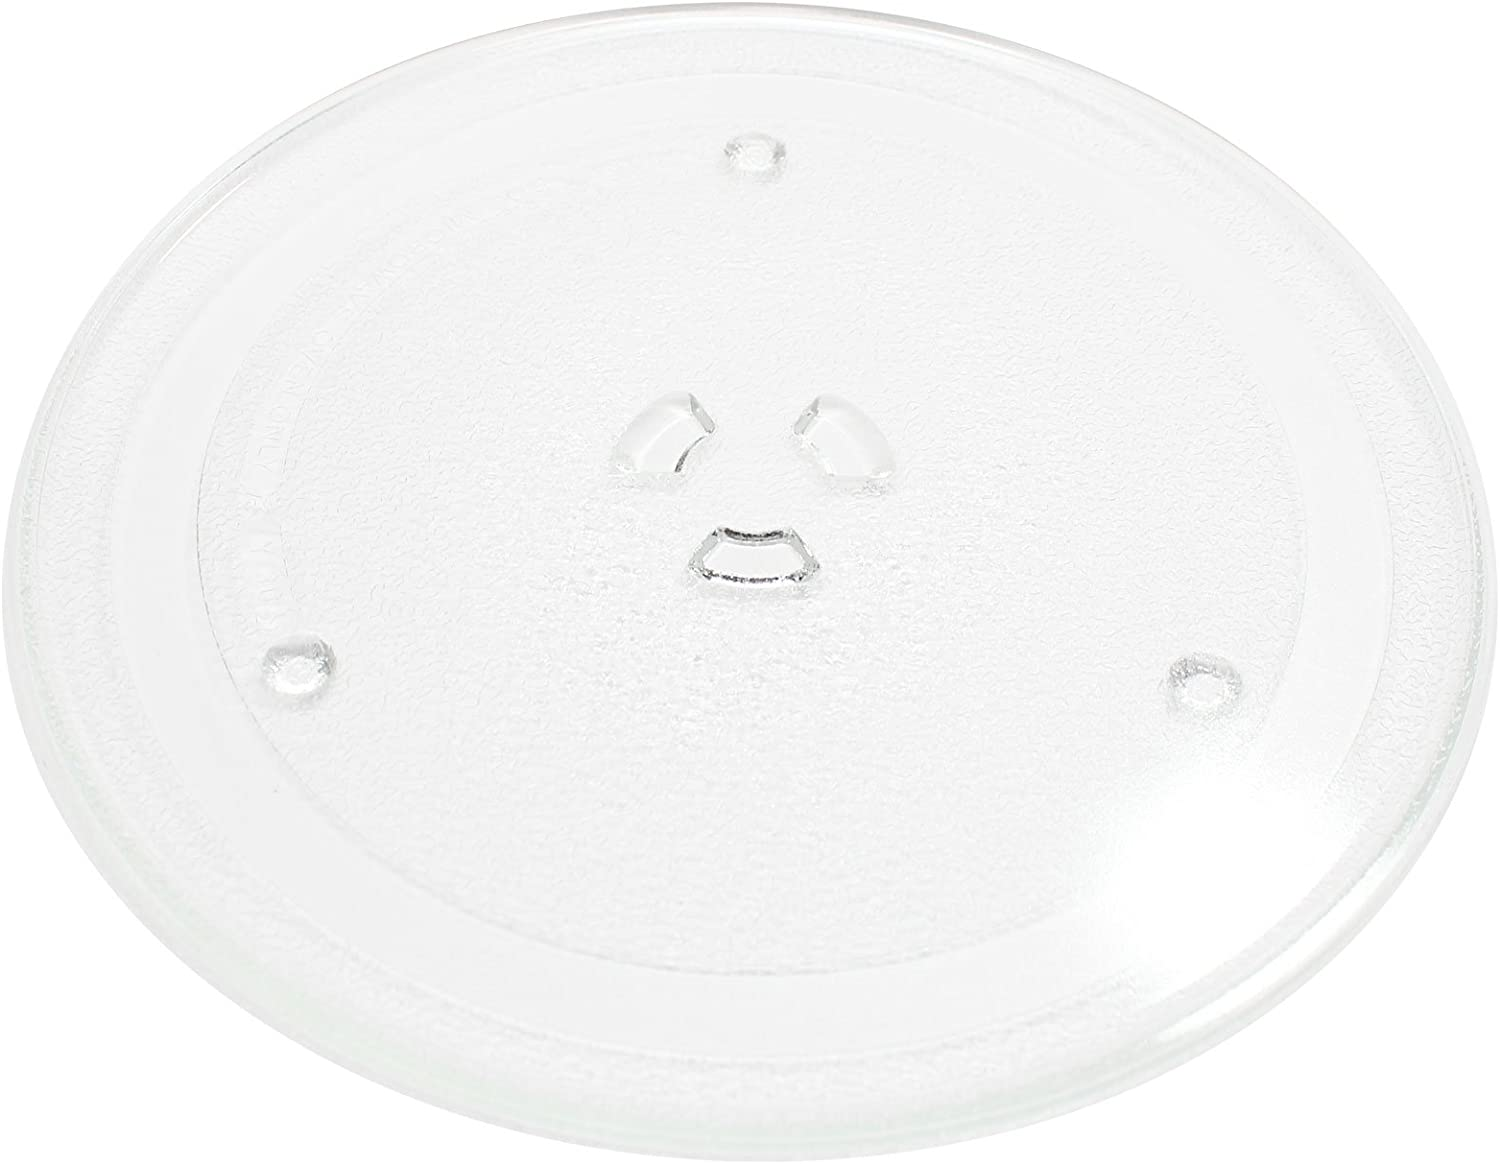 "Replacement for Samsung MW640WA Microwave Glass Plate - Compatible with Samsung DE74-00027 Microwave Glass Turntable Tray - 10"" (255mm)"